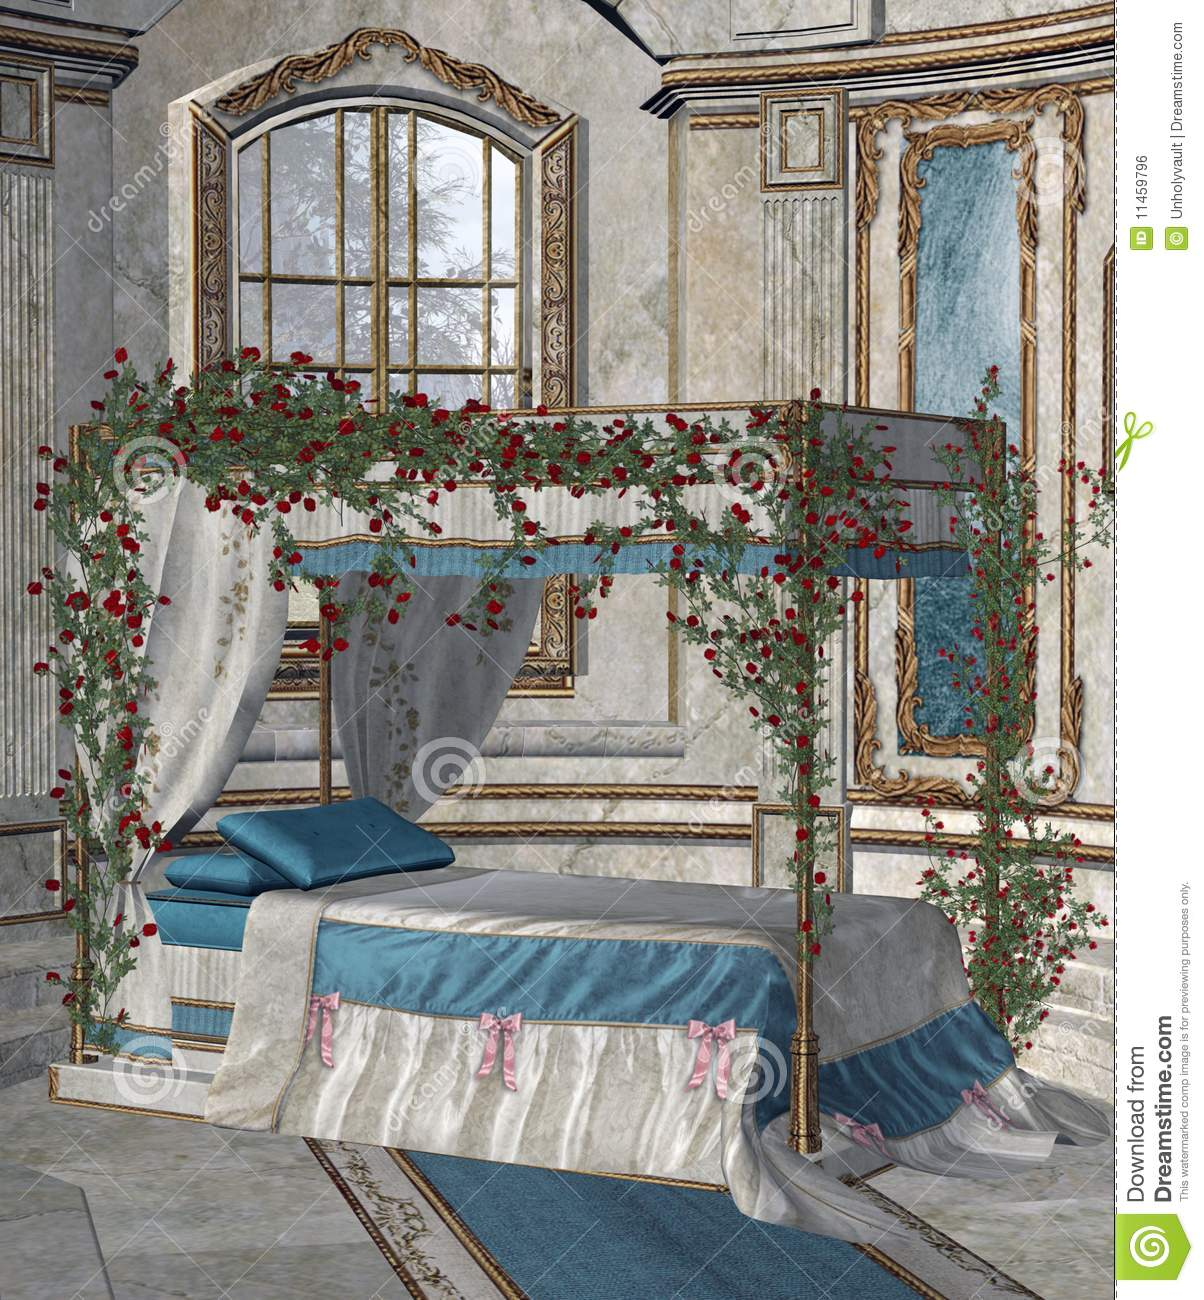 palace bedroom 2 royalty free stock image   image 11459796